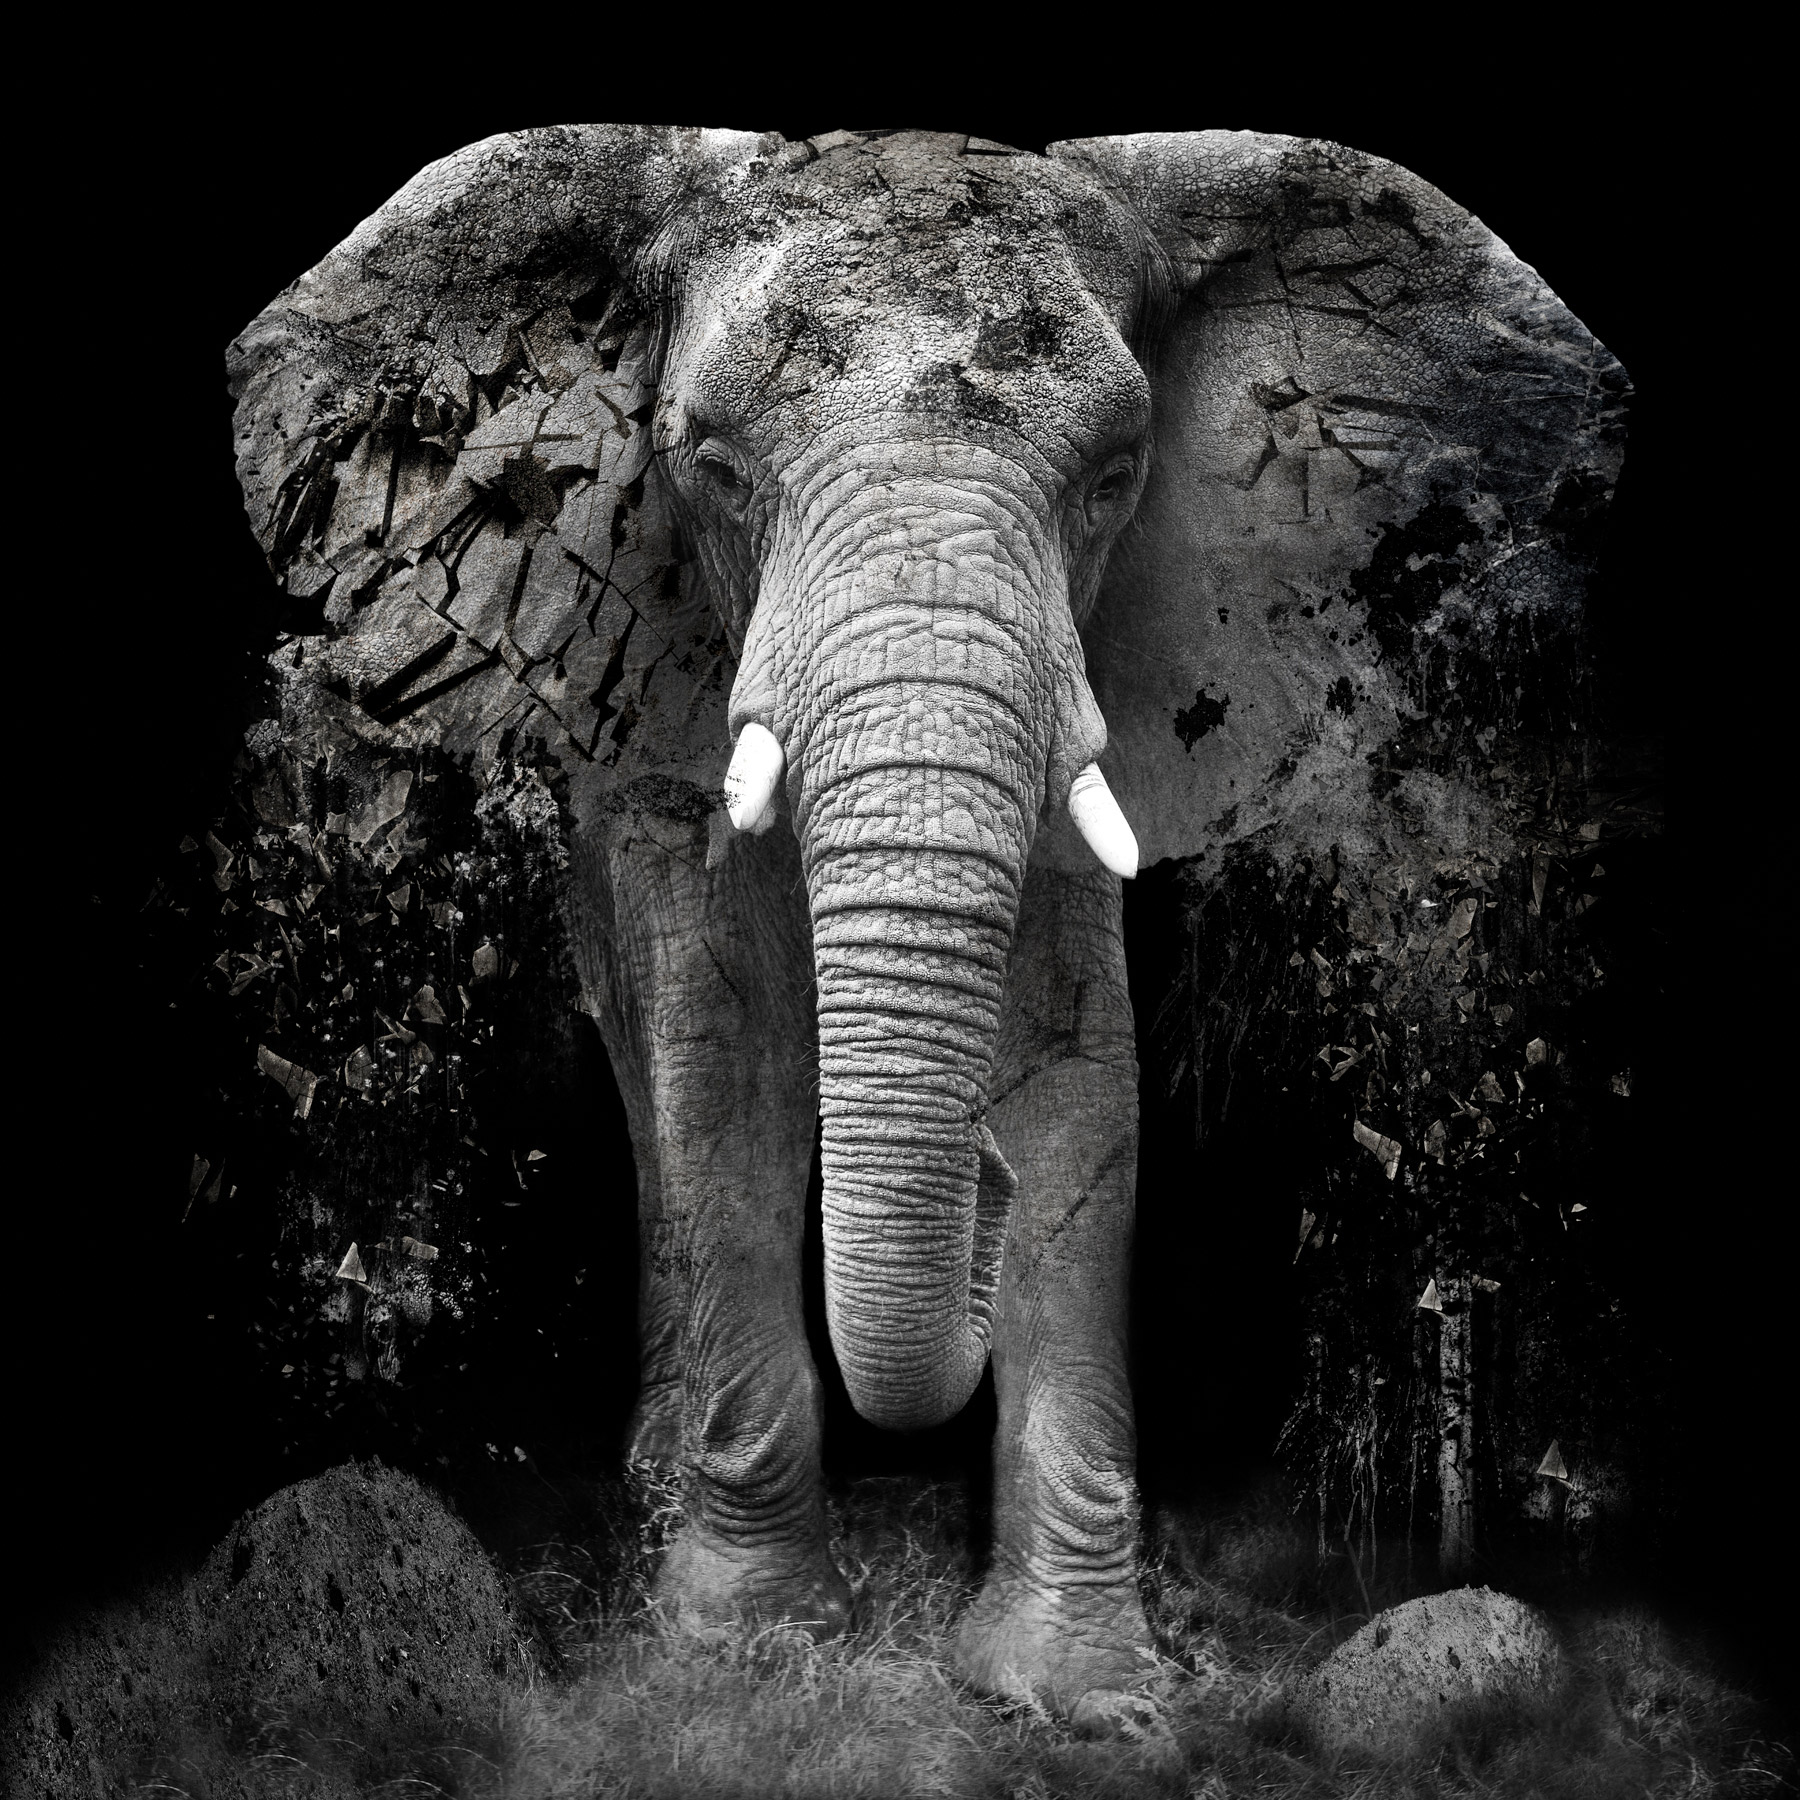 Erik Brede-Erik-Brede---The-Disappearance-of-the-Elephant.jpg